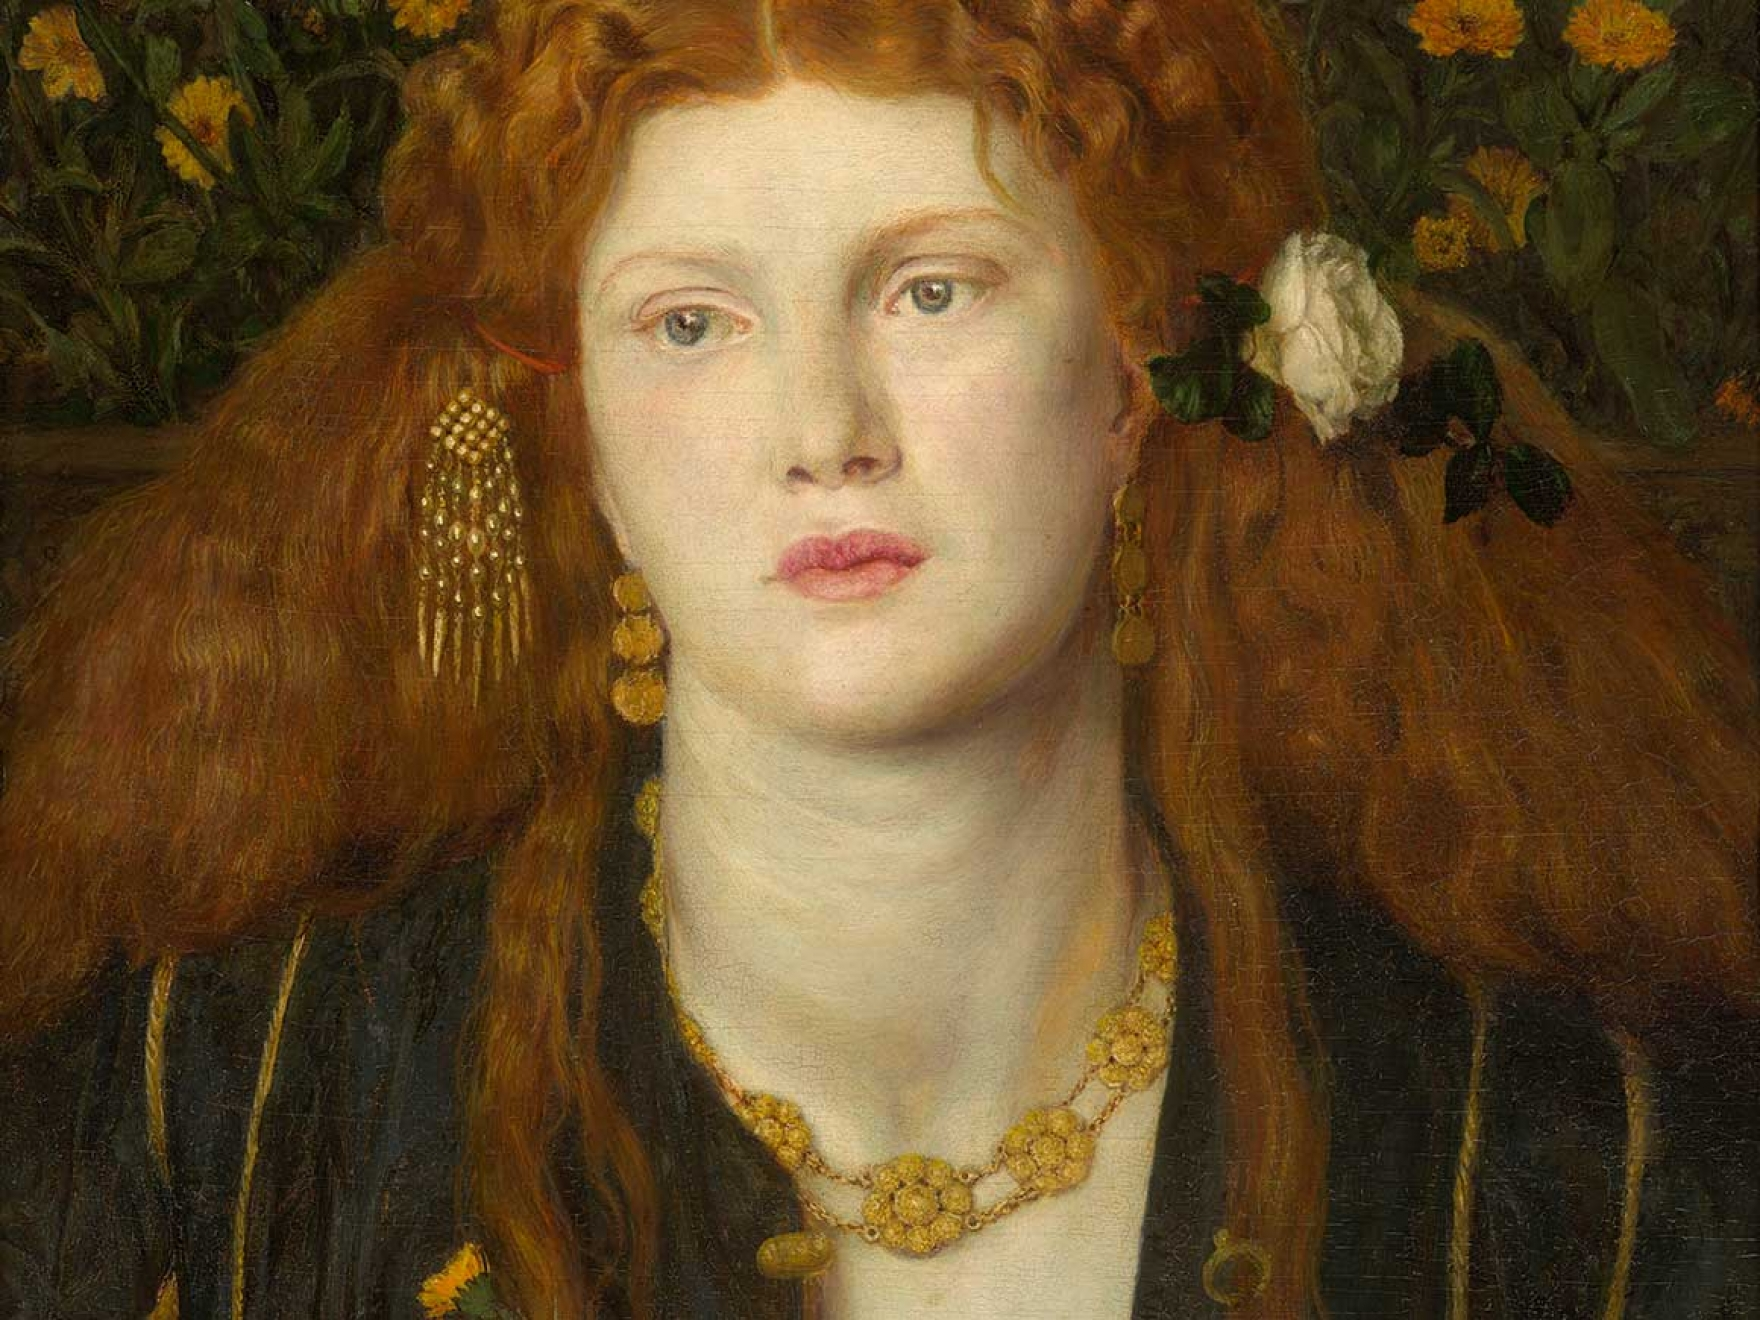 Dante Gabriel Rossetti's painting, Bocca Baciata (Lips That Have Been Kissed)